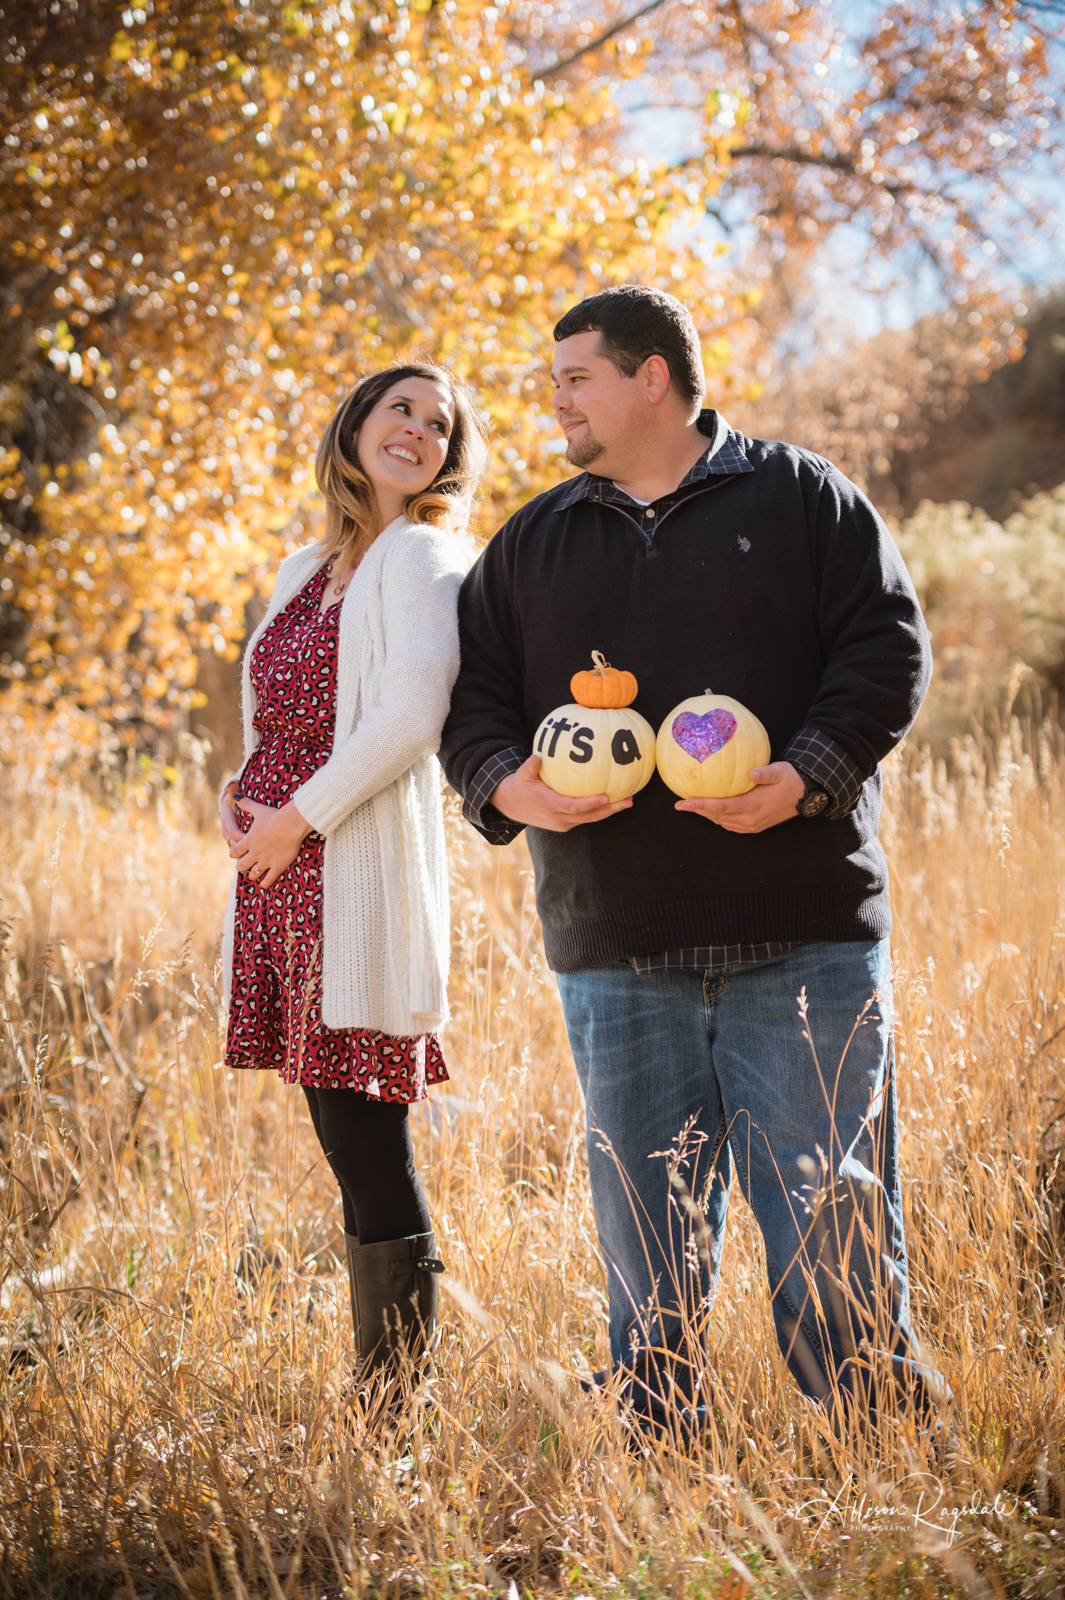 Pregnancy announcement photography